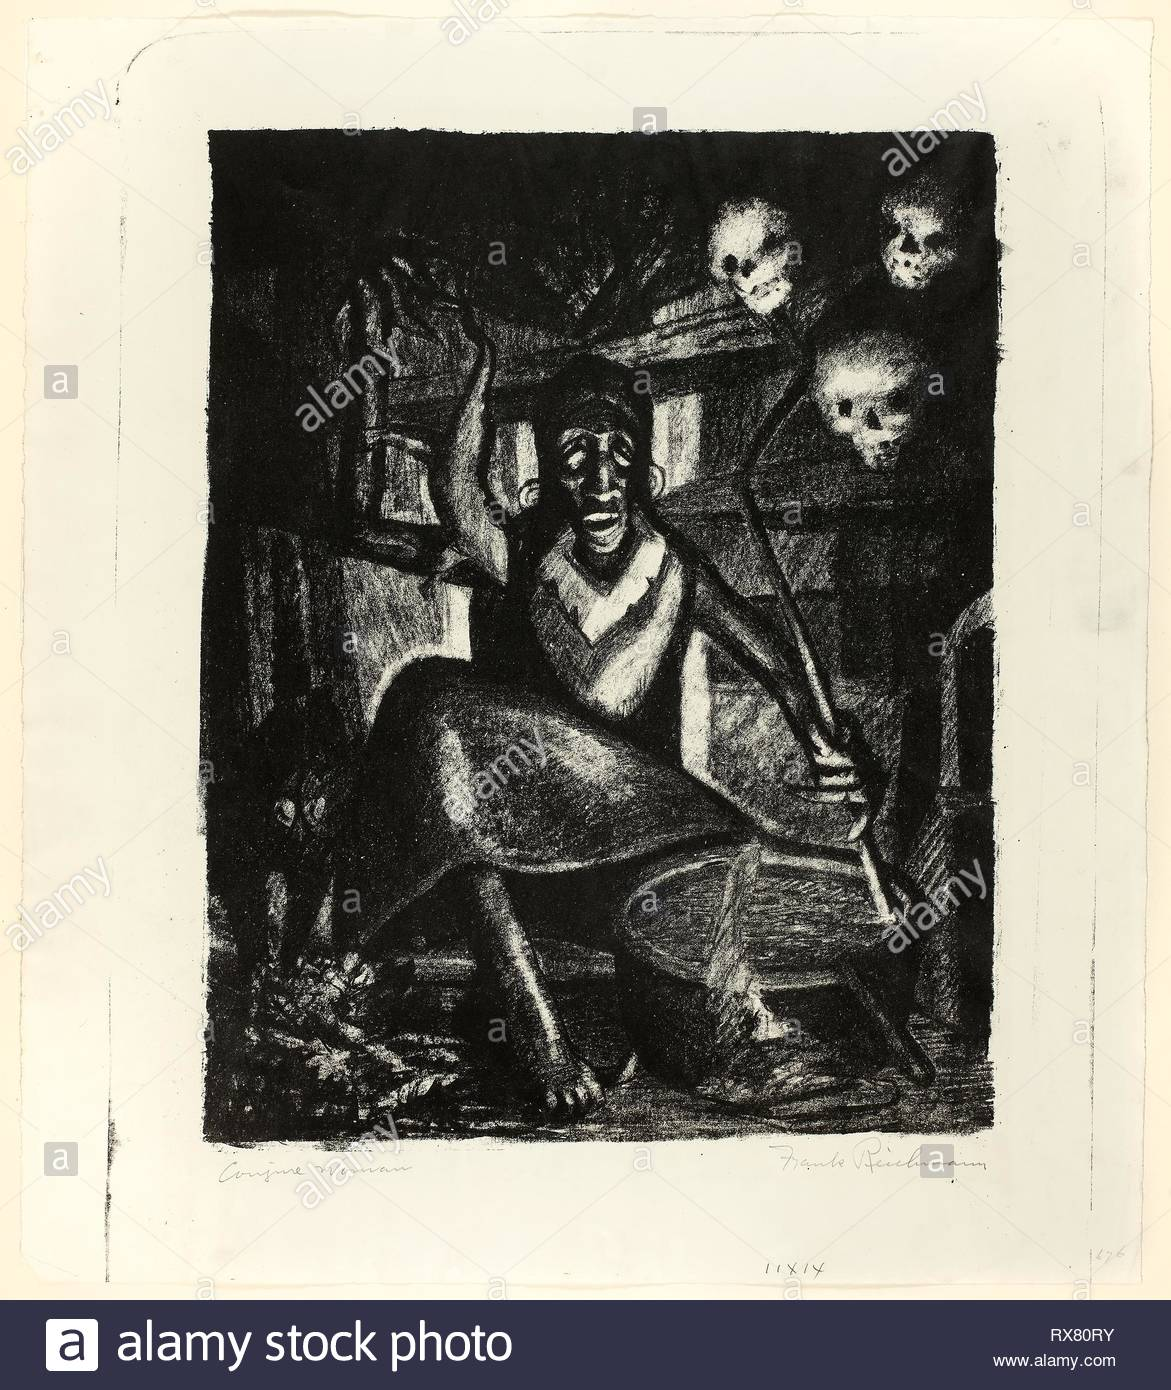 Conjure Woman. Frank Reichmann (American, 1913-1960); published by the Works Progress Administration. Date: 1935-1942. Dimensions: 353 x 278 mm (image); 445 x 395 mm (sheet). Lithograph on paper. Origin: United States. Museum: The Chicago Art Institute. - Stock Image